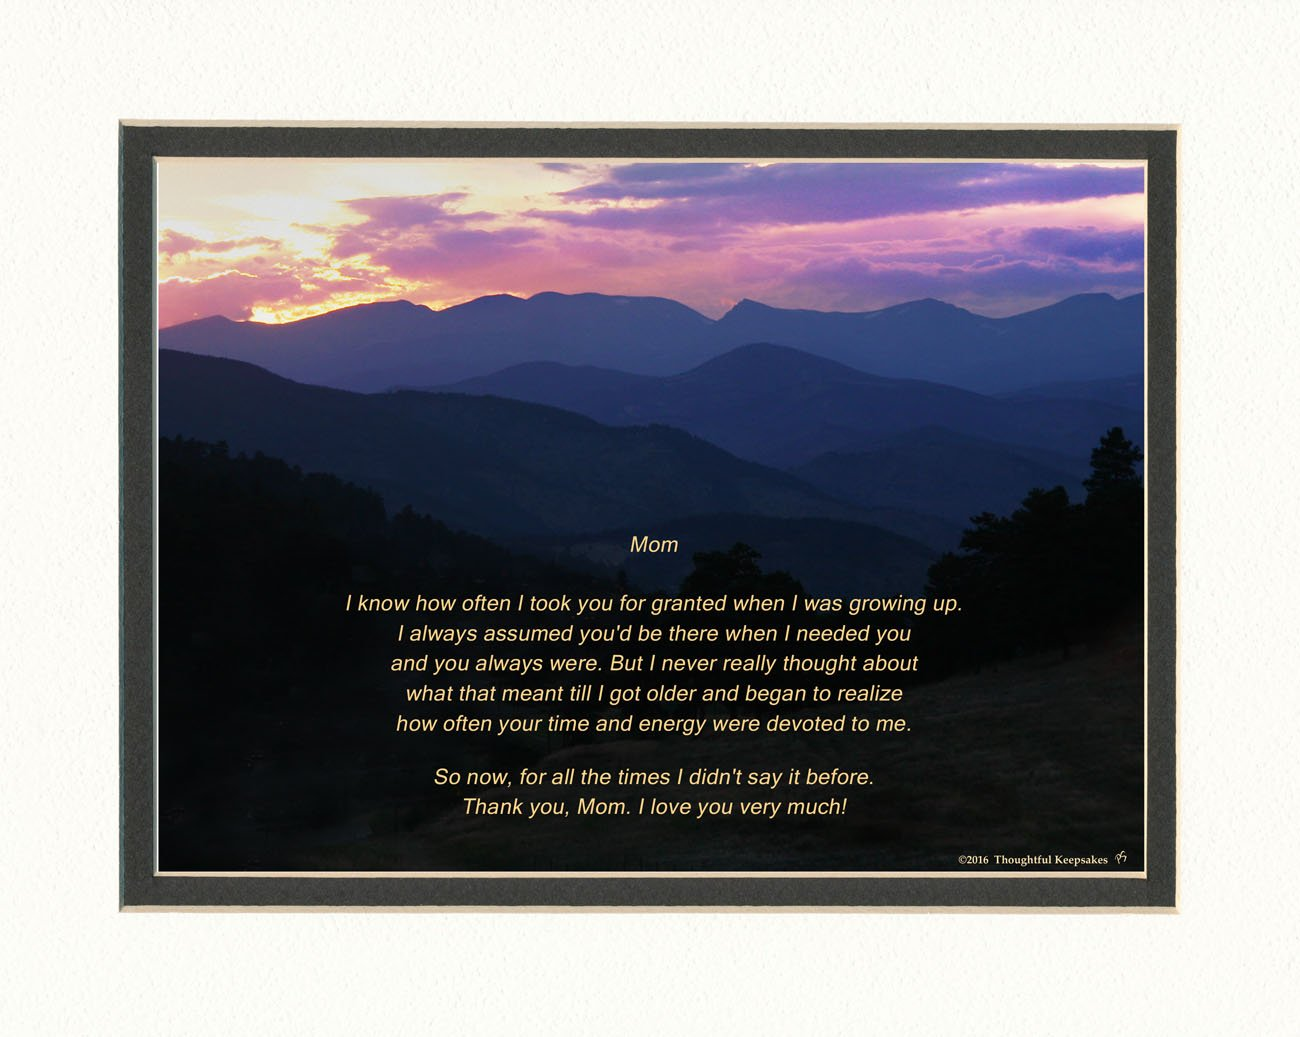 Mom Gift with ''Thank You Mom'' Poem. Mt Sunset Photo, 8x10 Double Matted. Special Mother Gift for Mother's Day, Christmas, Birthday or Appreciation Gift for Mom.